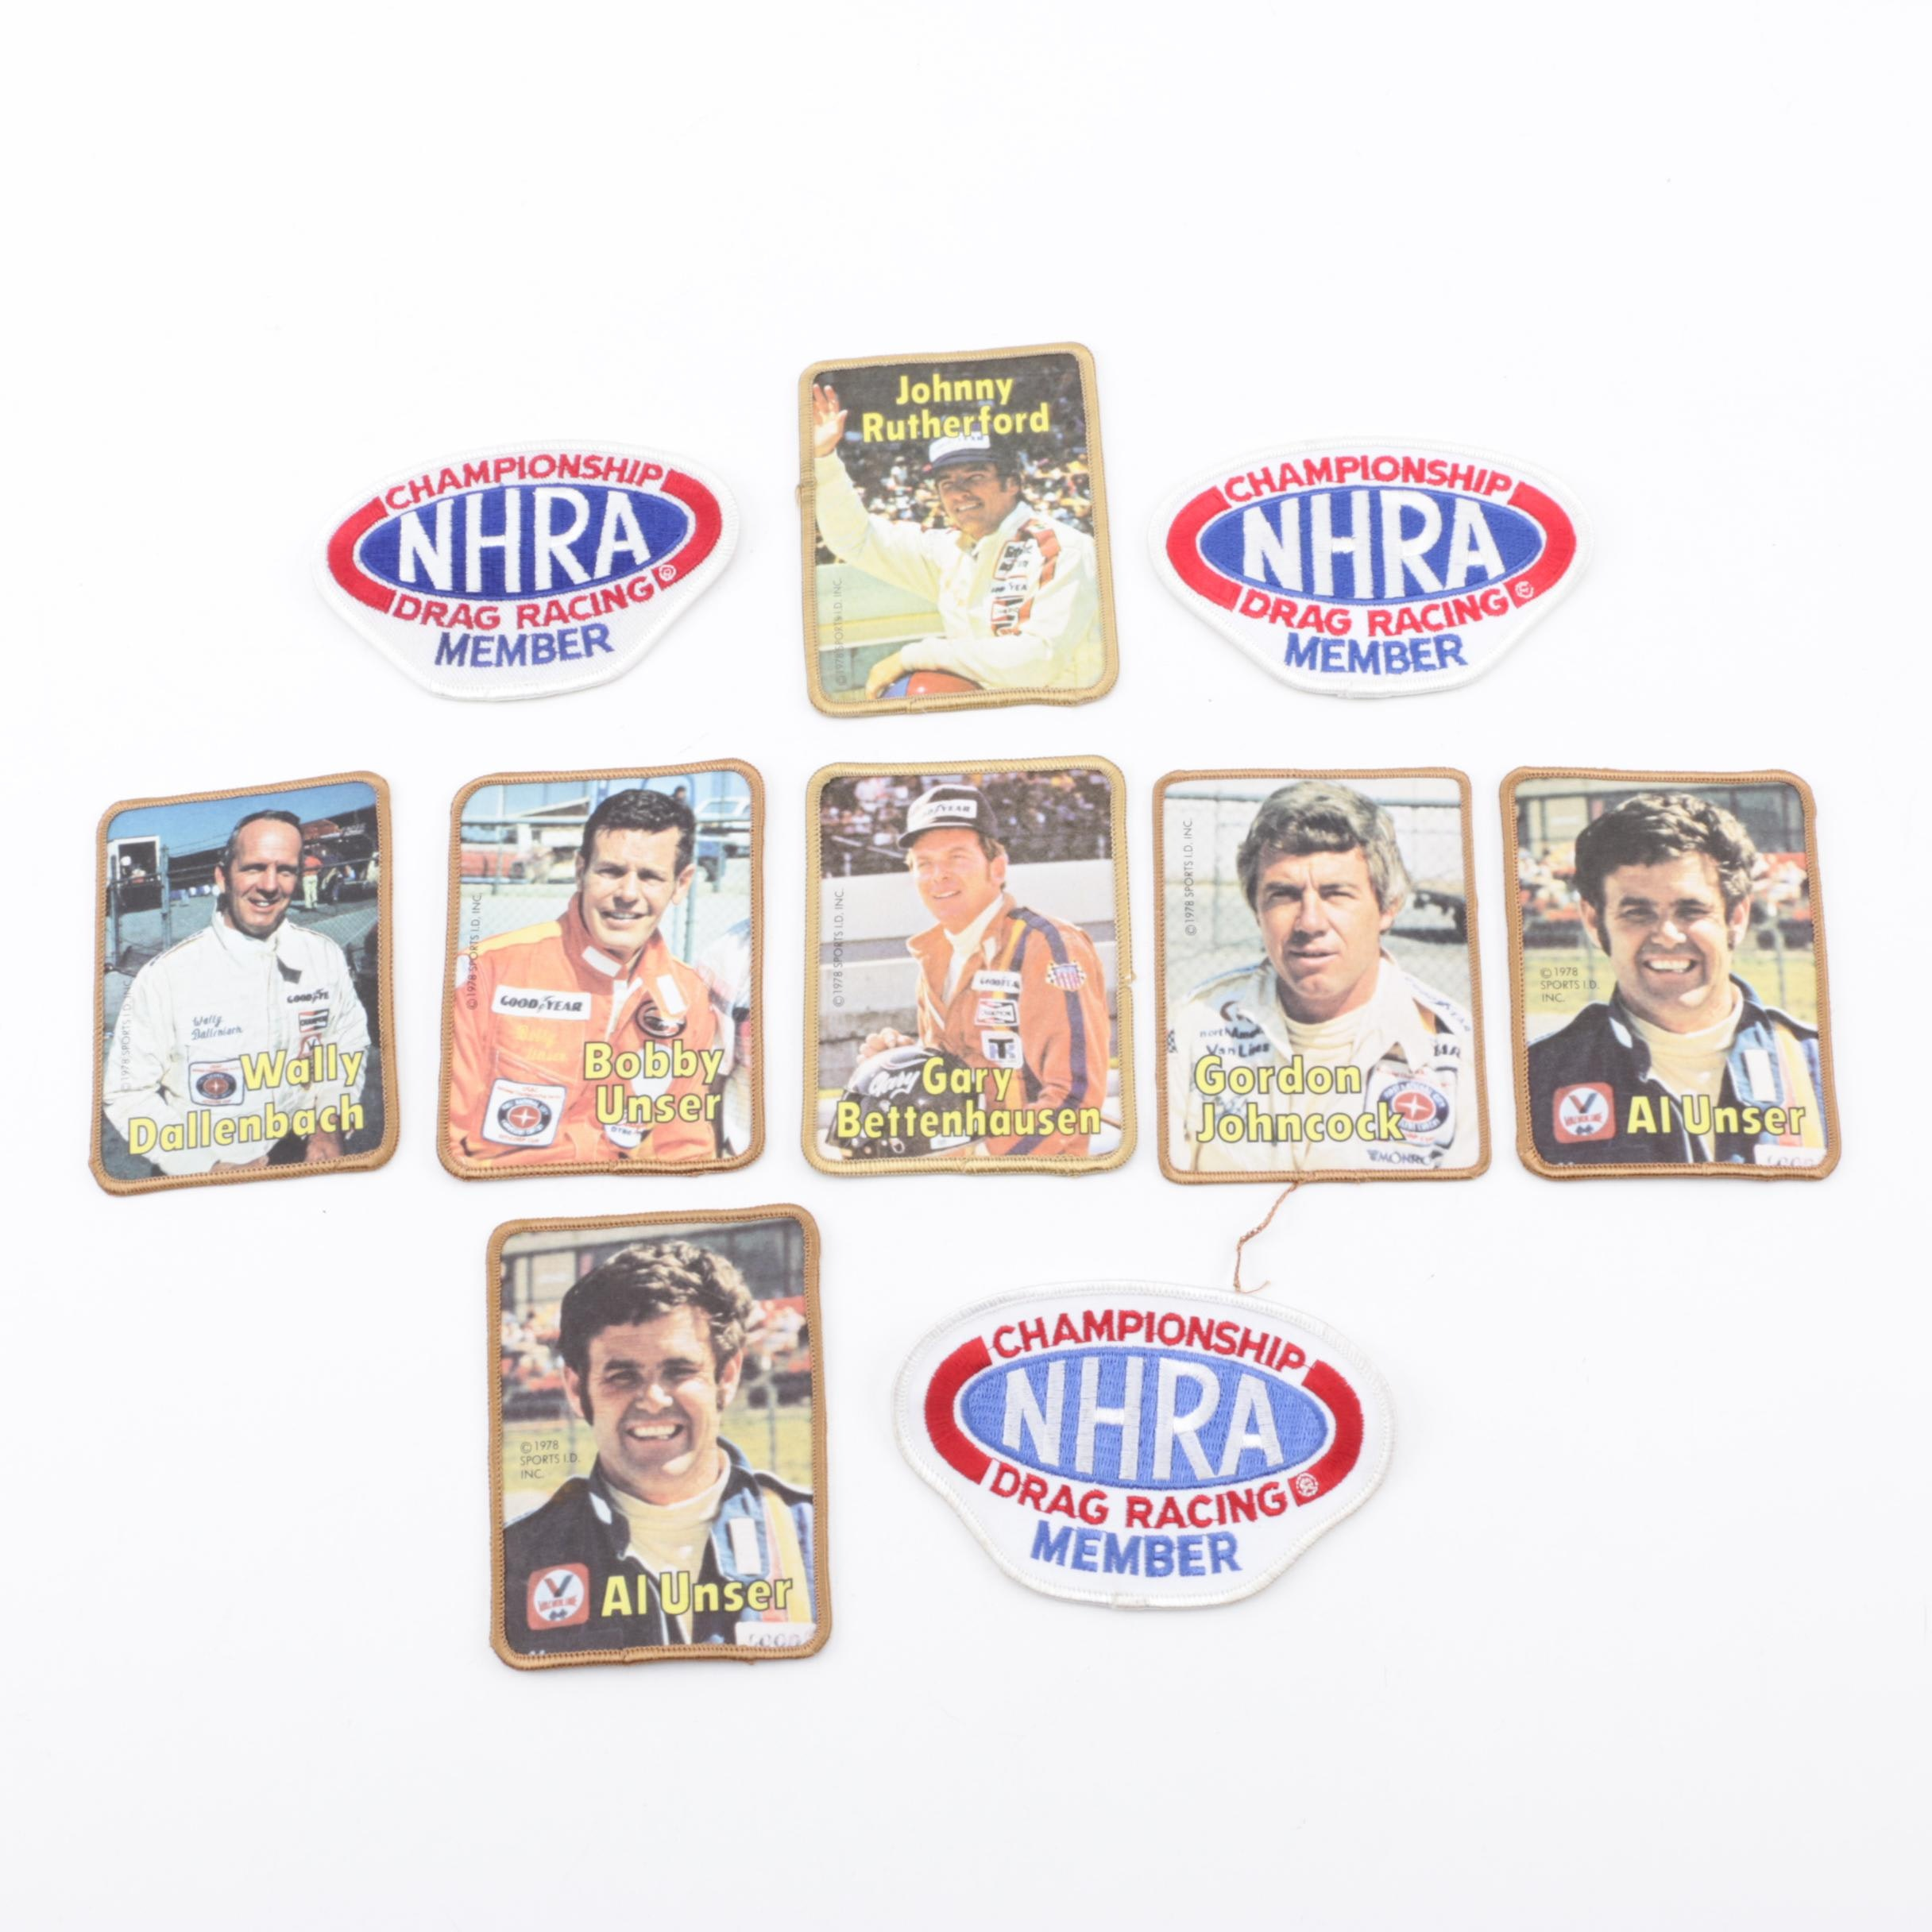 1970's NHRA Drag Racing Patches Including Al and Bobby Unser